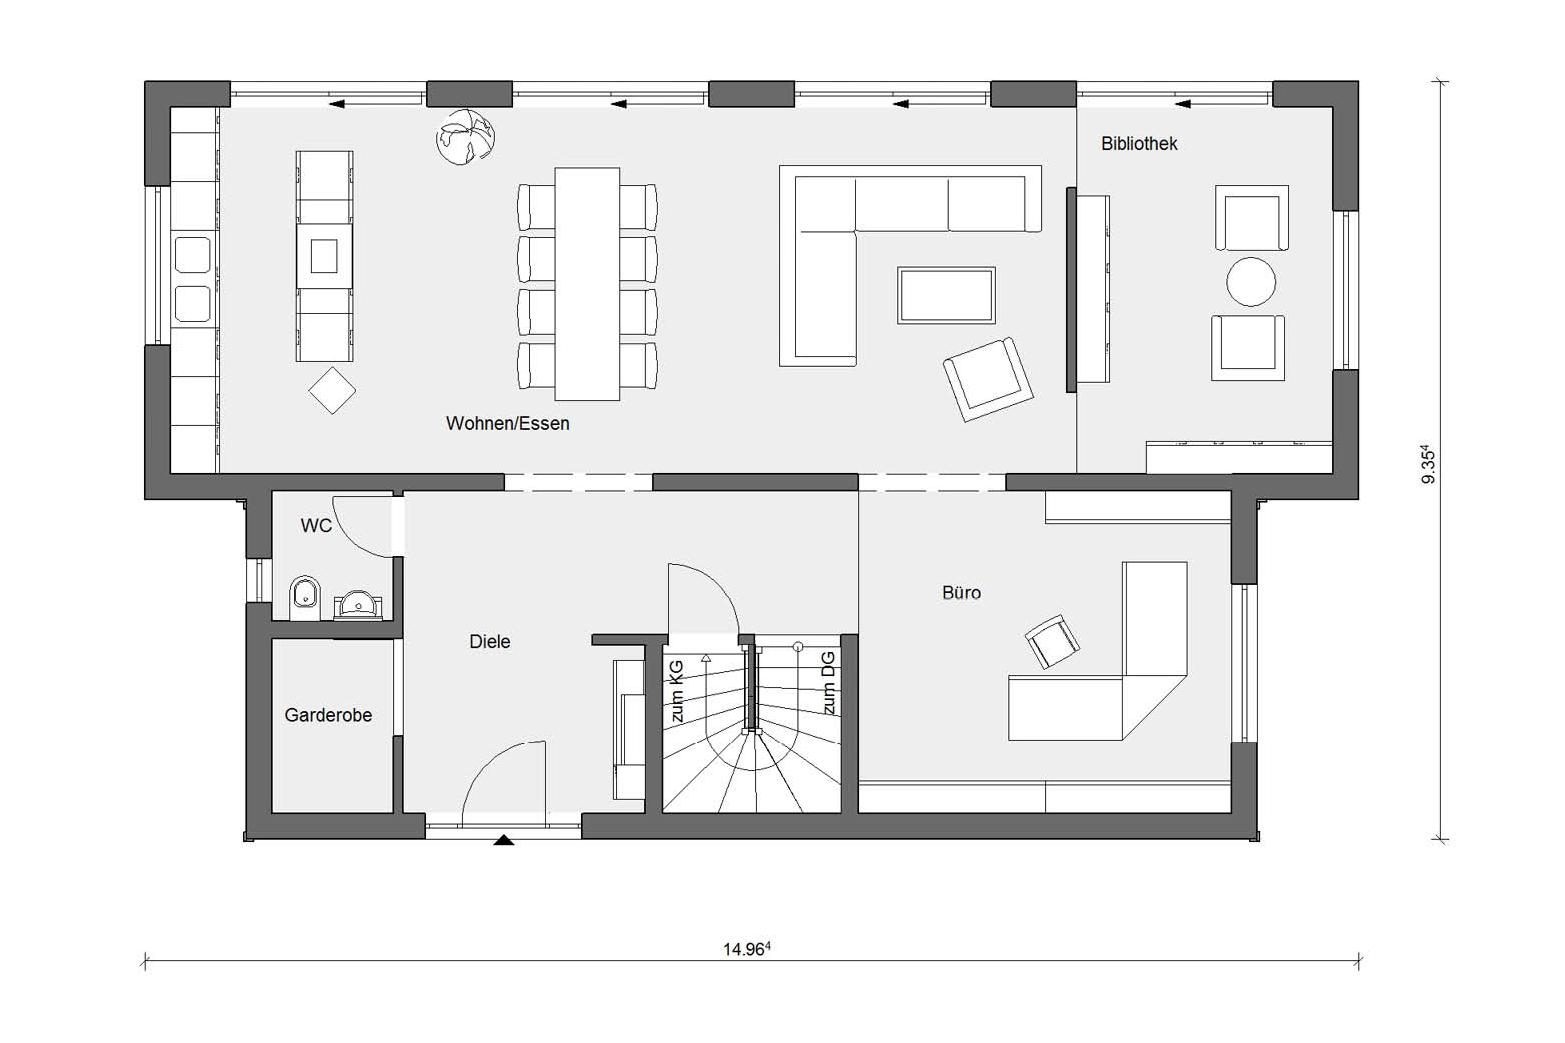 Ground floor plan E 15-217.1 Prefabricated house with 200sqm